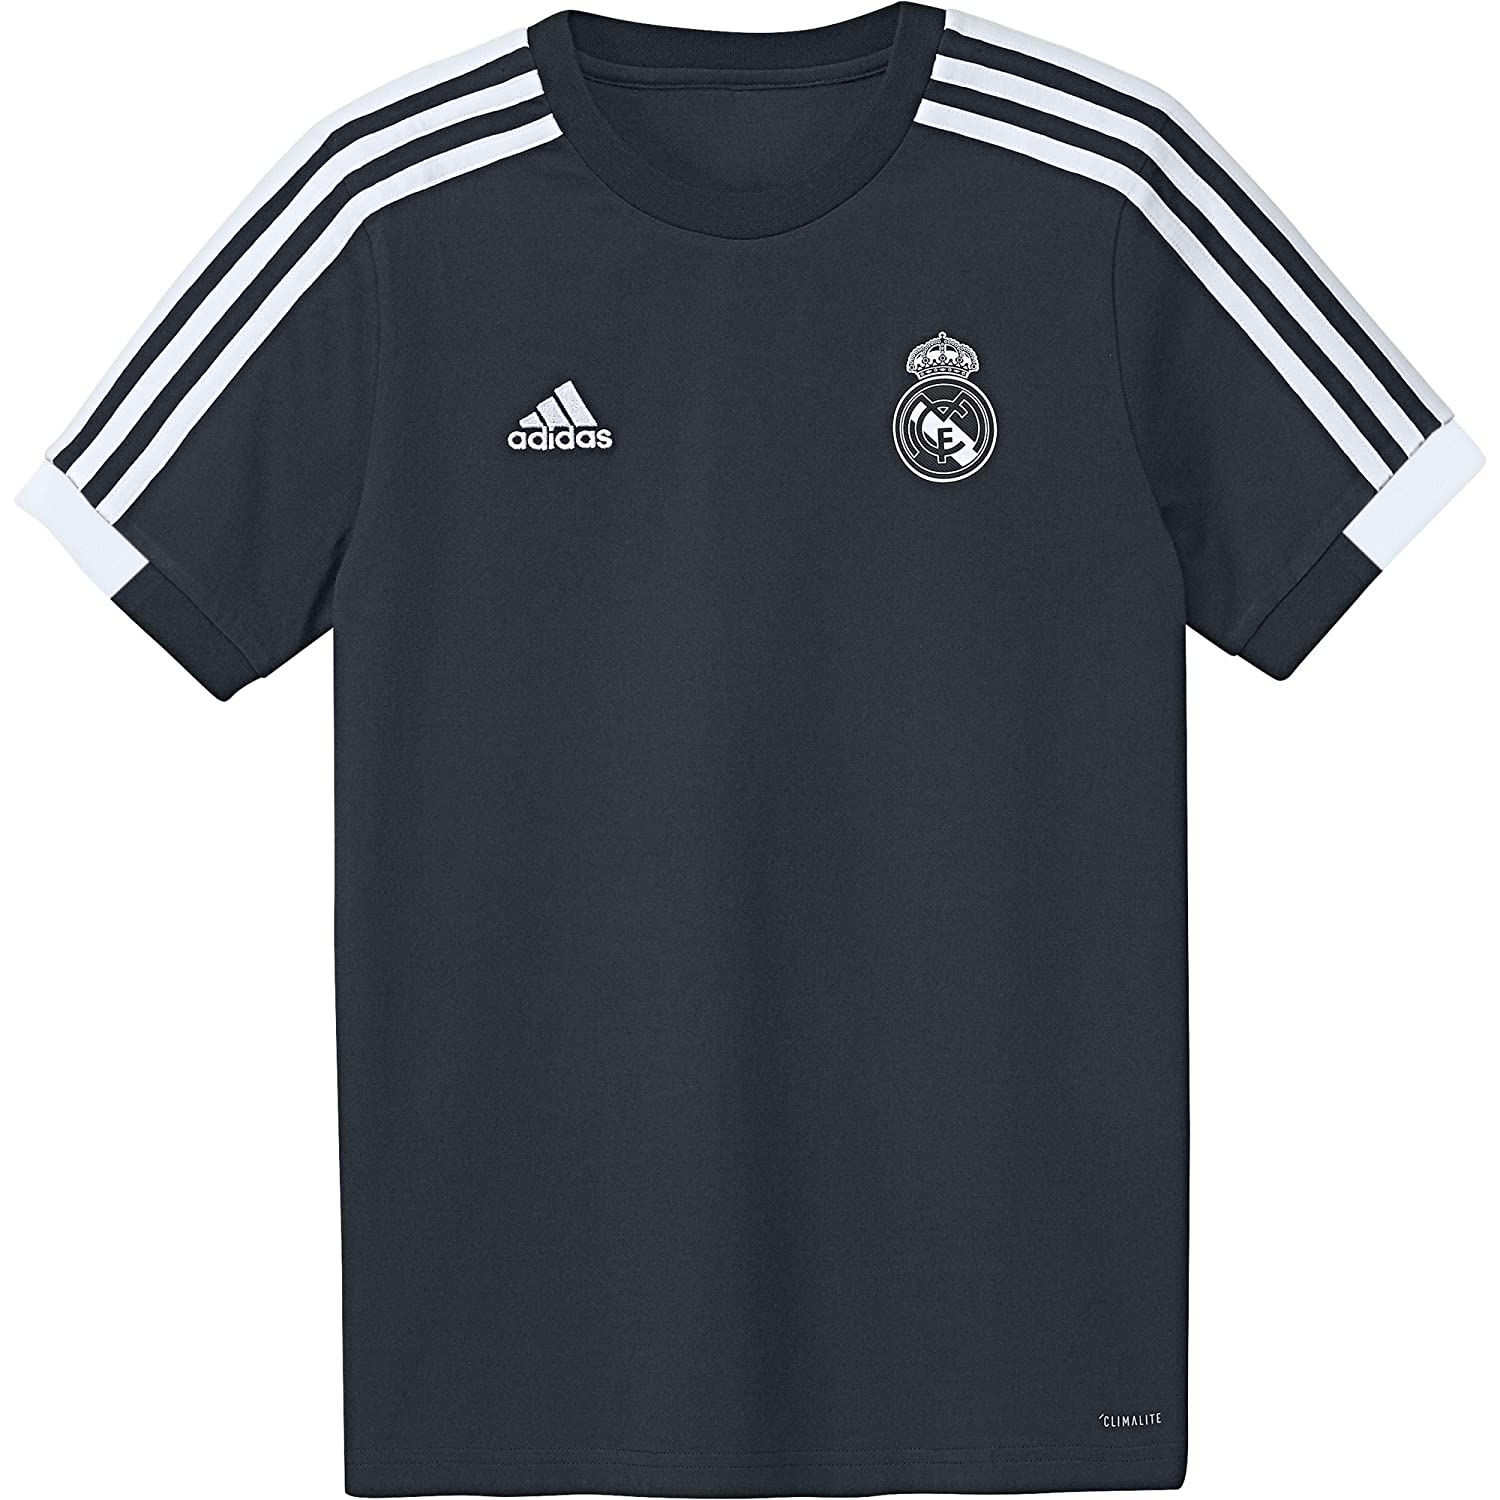 adidas Camiseta Real Madrid 2018-2019 Niño Tech onix-Black-Core white   Amazon.es  Deportes y aire libre 5b1e7abb7d032